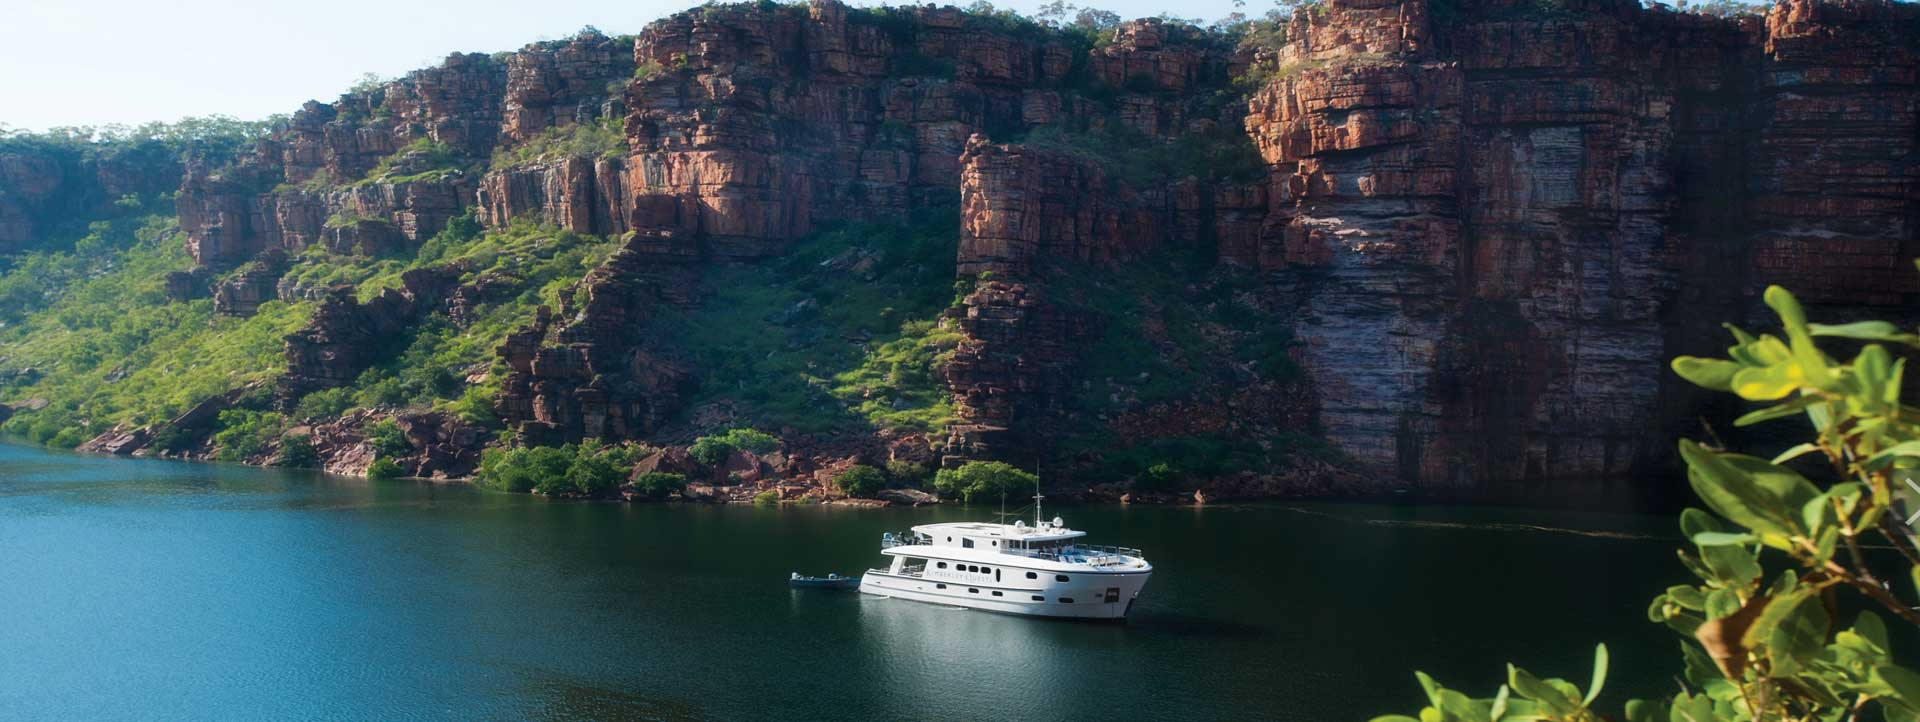 KIMBERLEY-QUEST-Kimberley-coast-cruises-side-profile